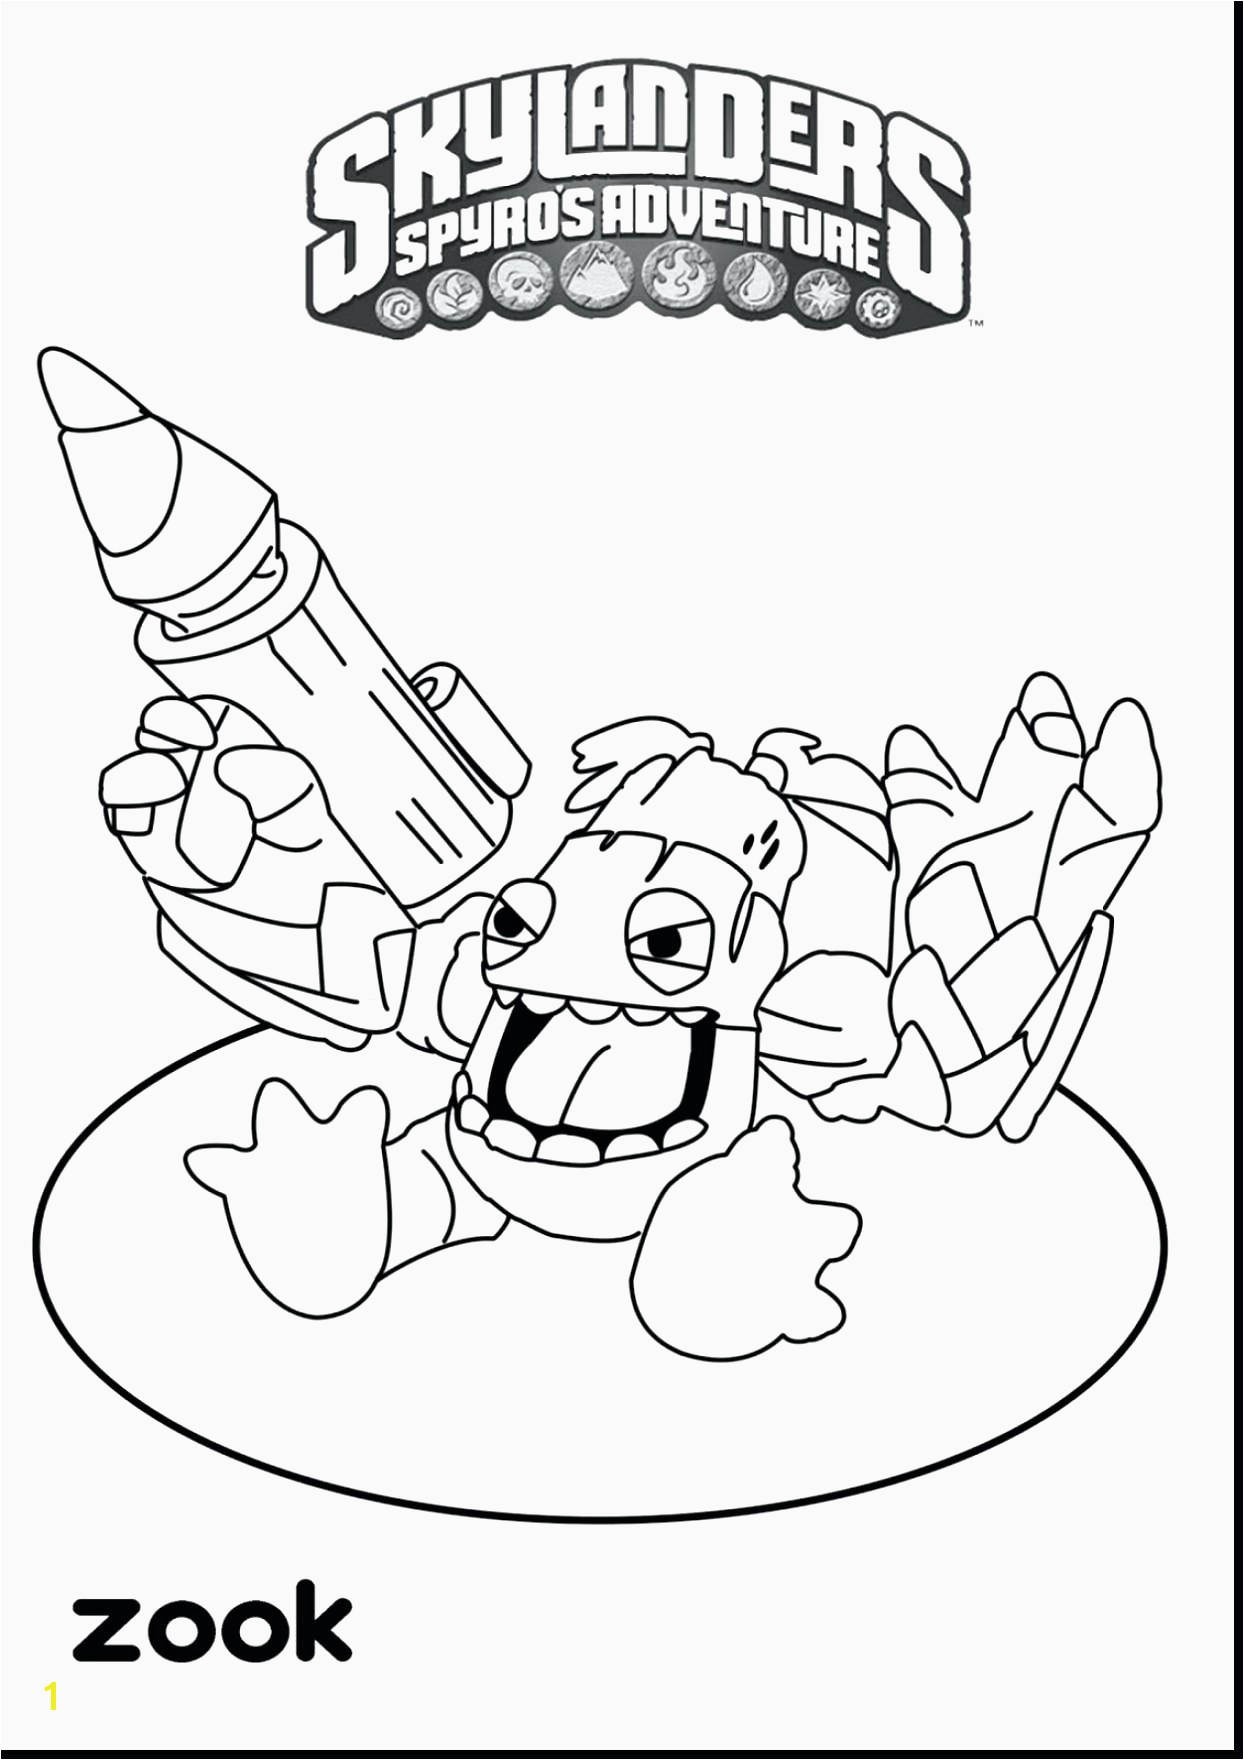 R Coloring Page Lovely Book Coloring Pages Best sol R Coloring Pages Best 0d – Fun